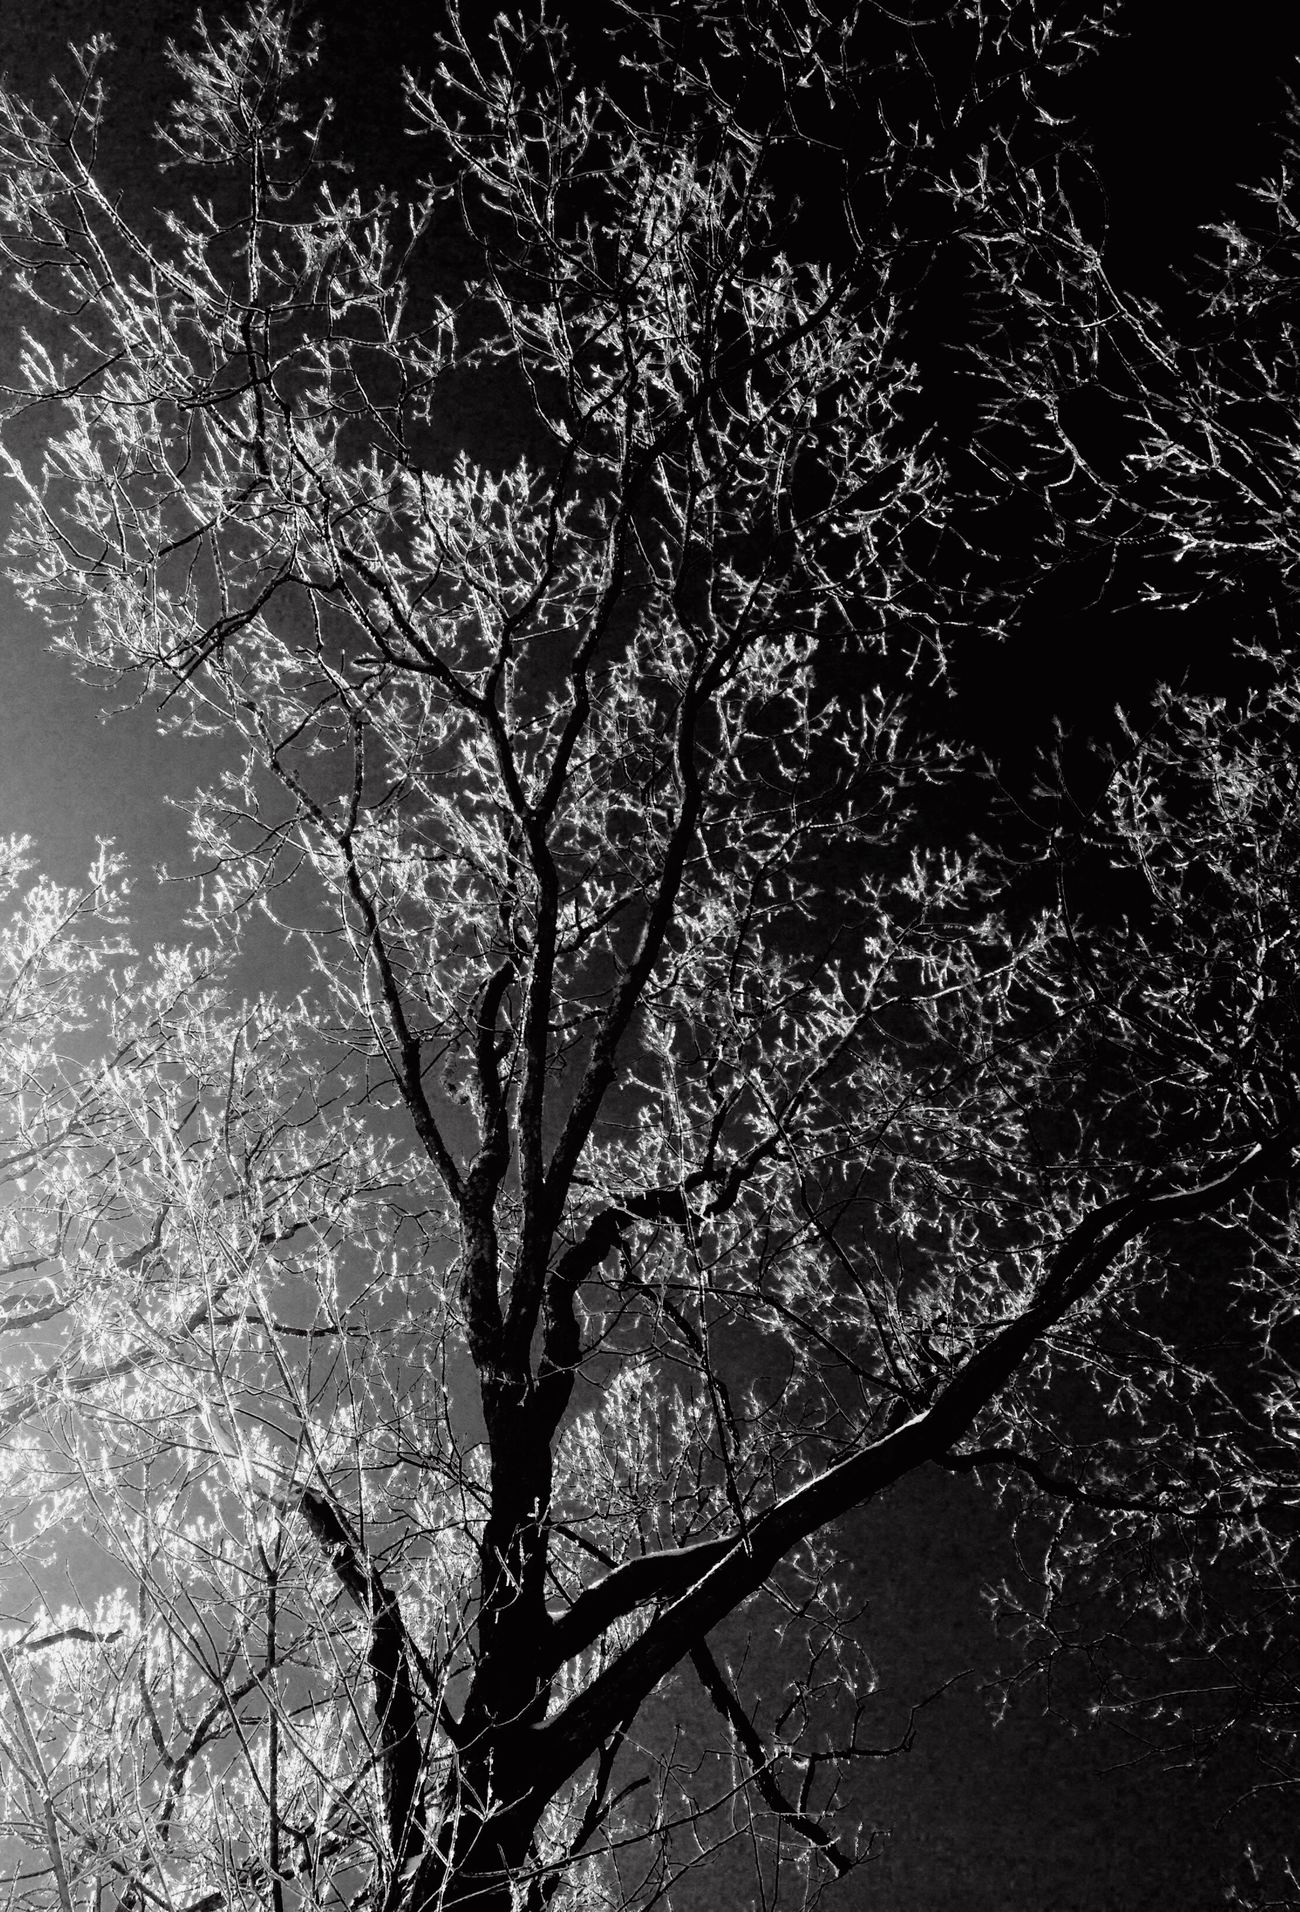 Nature IPhoneography Landscape_Collection Tree Beauty In Nature Eye4photography  Eyeemphotography Planetearth From My Point Of View Blackandwhite EyeEm Nature Lover Nature_collection Mother Nature Instadaily Still Life Monochrome Photography Taking Photos Blackandwhite Photography